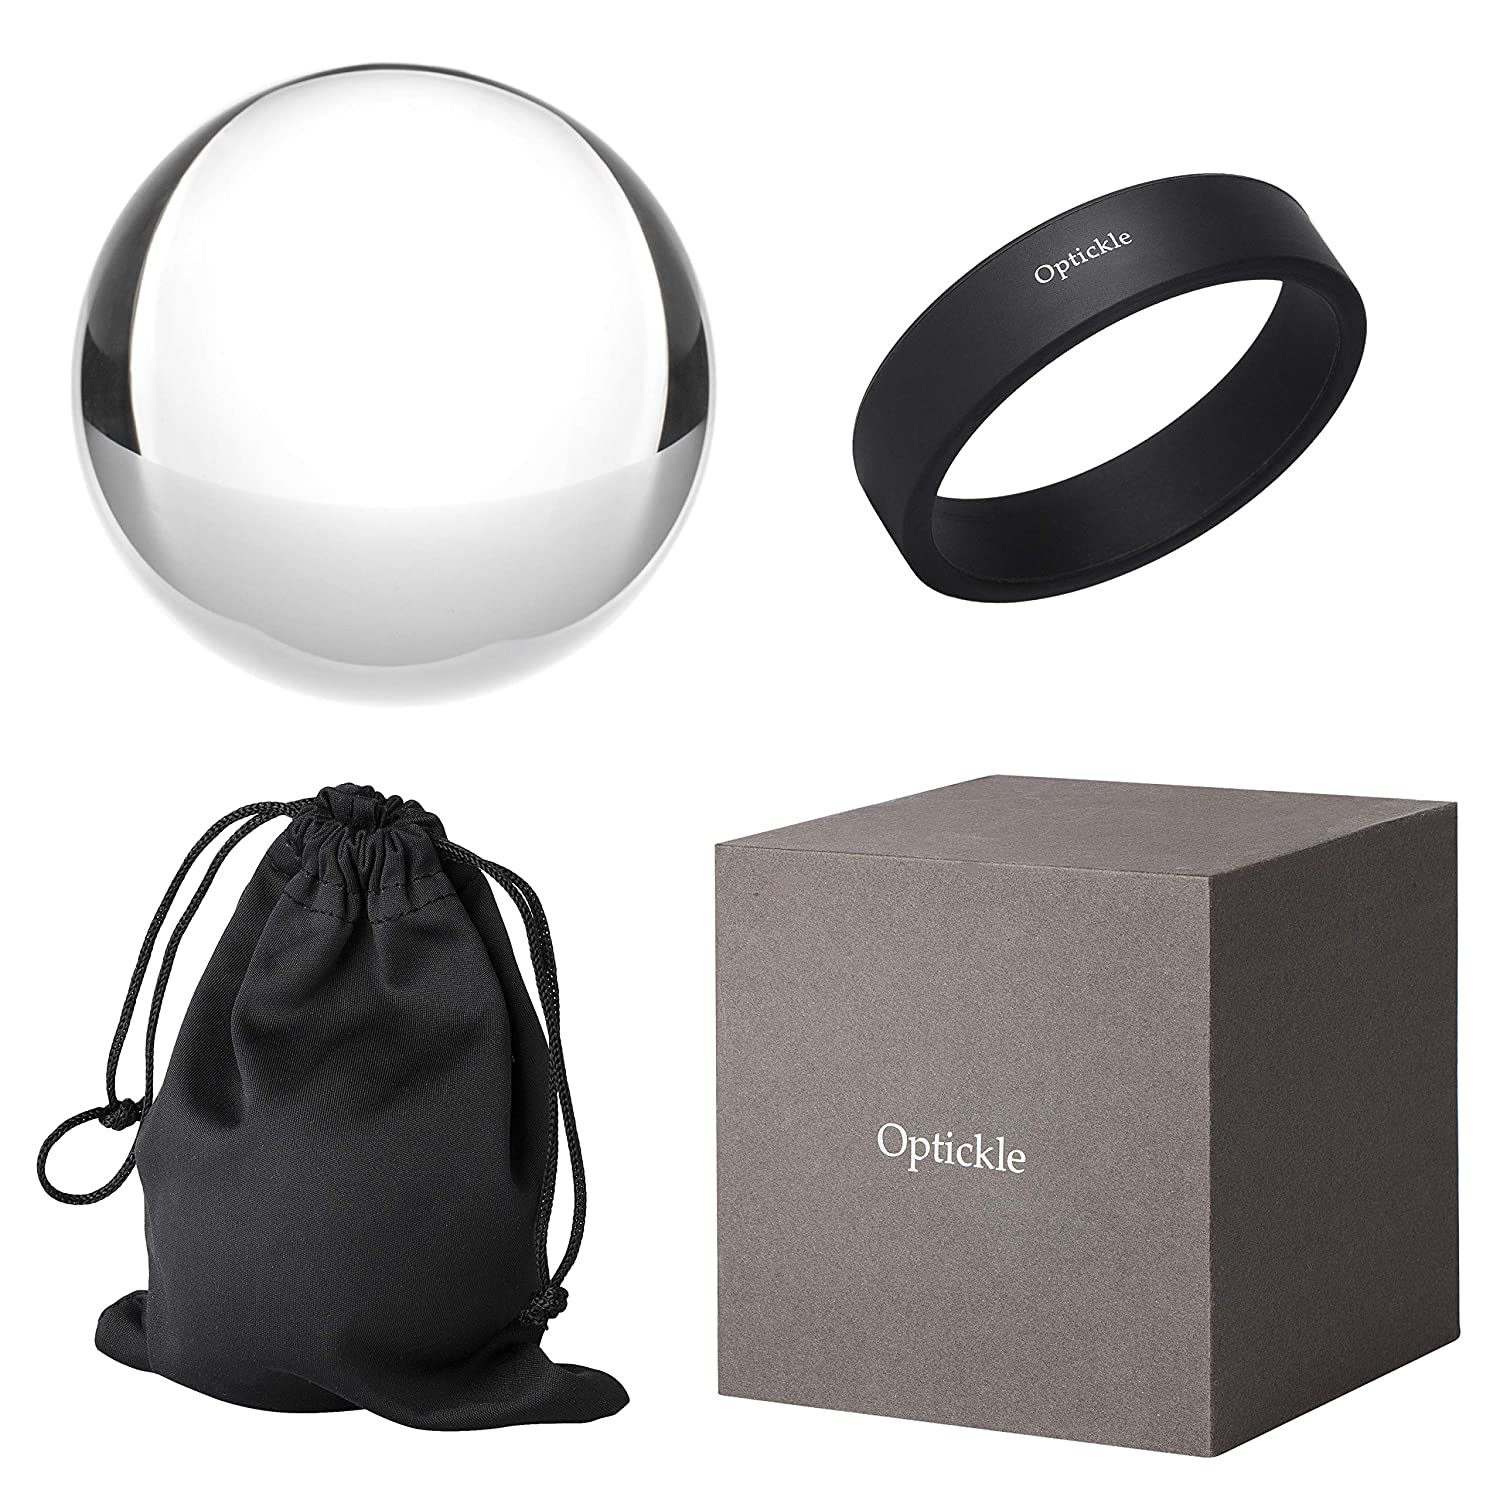 Optickle - Photography Crystal Ball (78mm / 3inch) Optical Glass - K9 Crystal - Great Gift Idea for Creatives - Capture Brilliant 180-Degree Photos - No-Scratch Silicone Stand Ainoina